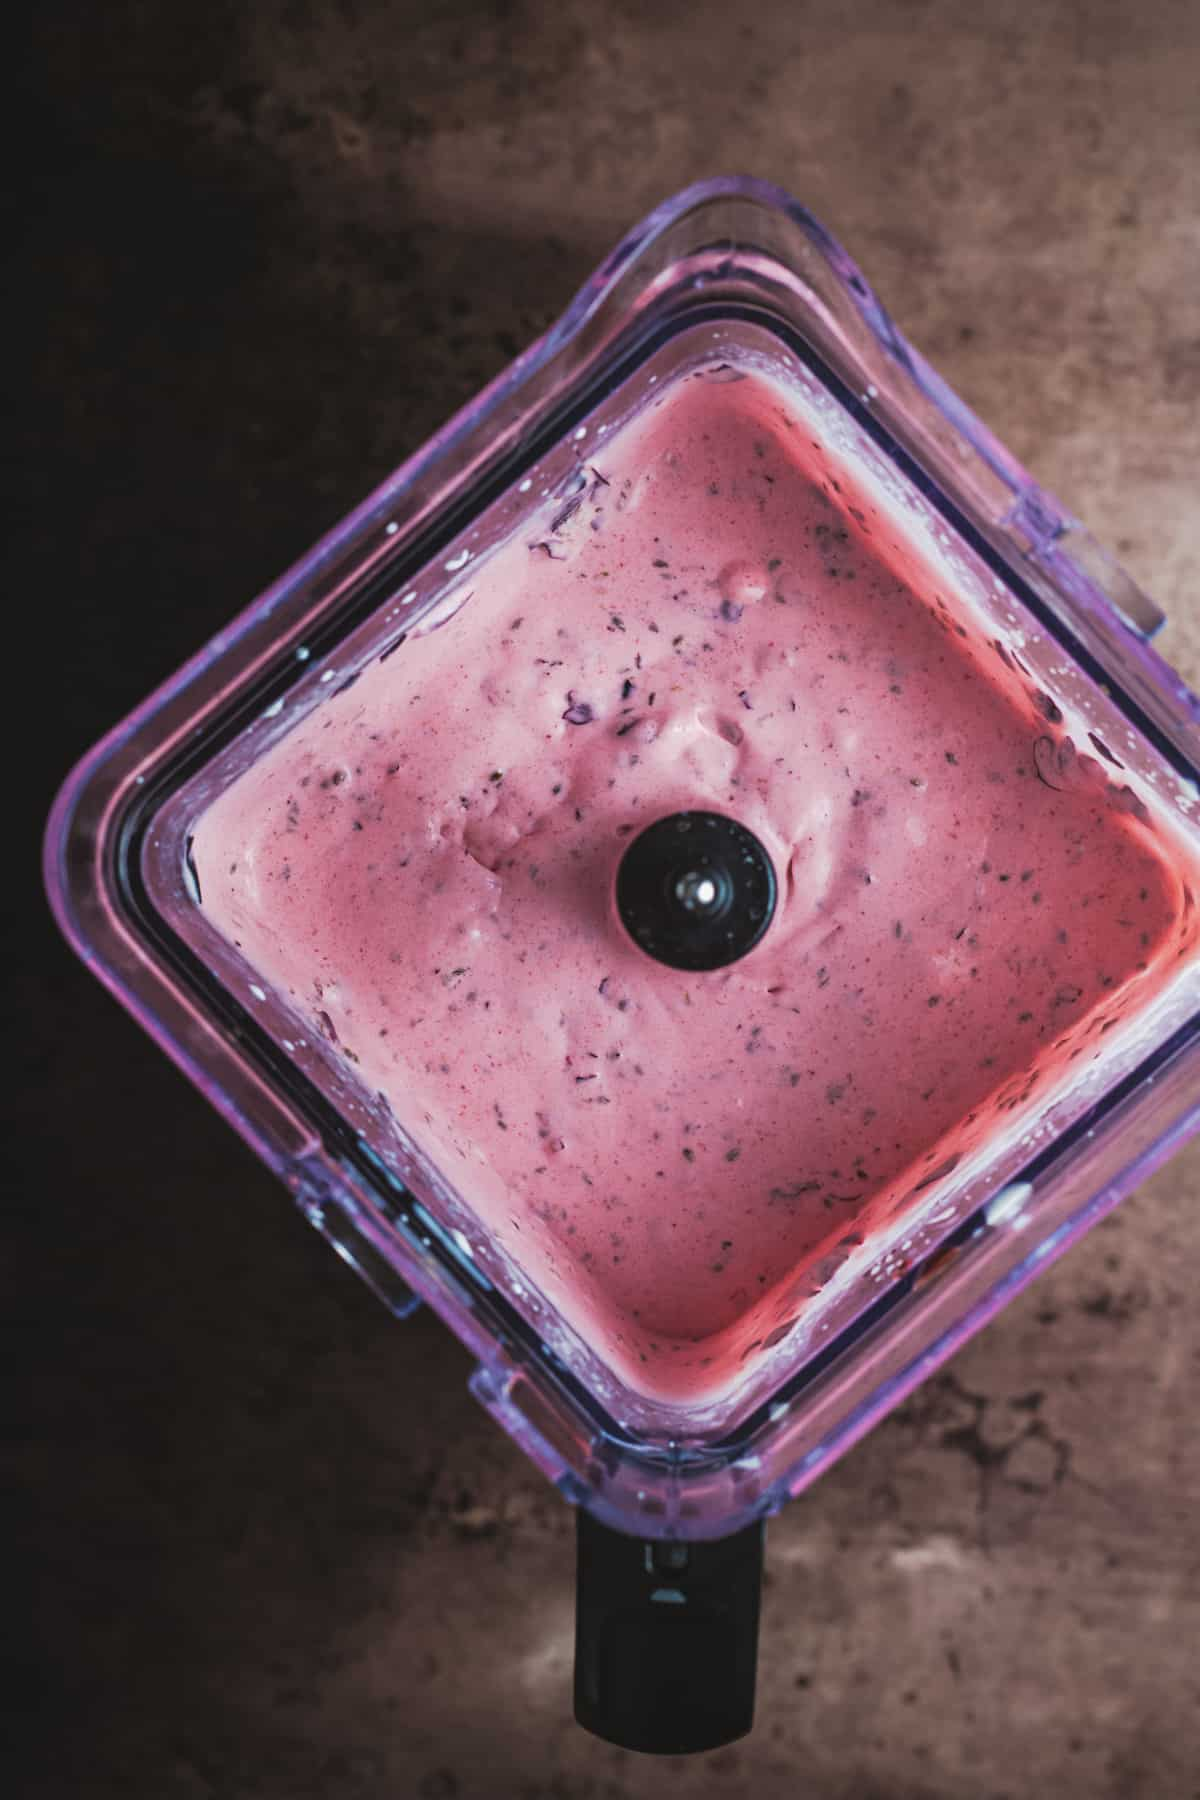 blackcurrants blended with milk